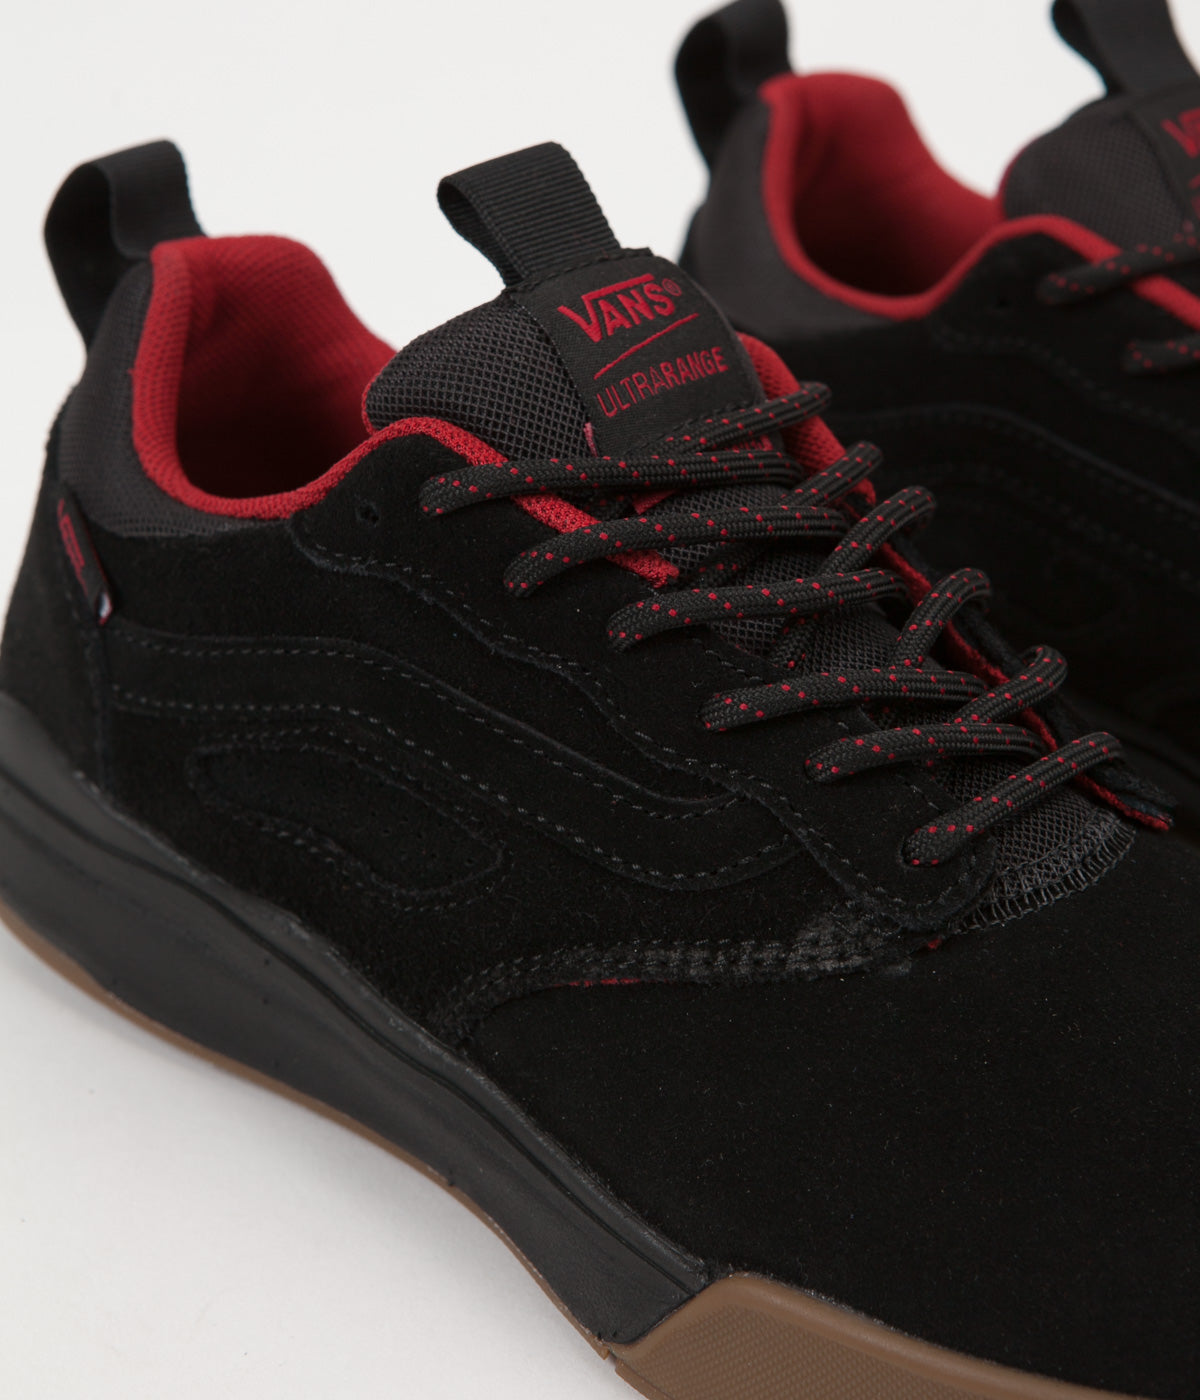 e03d0d212bb3 ... Vans X Spitfire UltraRange Pro Shoes - Cardiel   Black ...